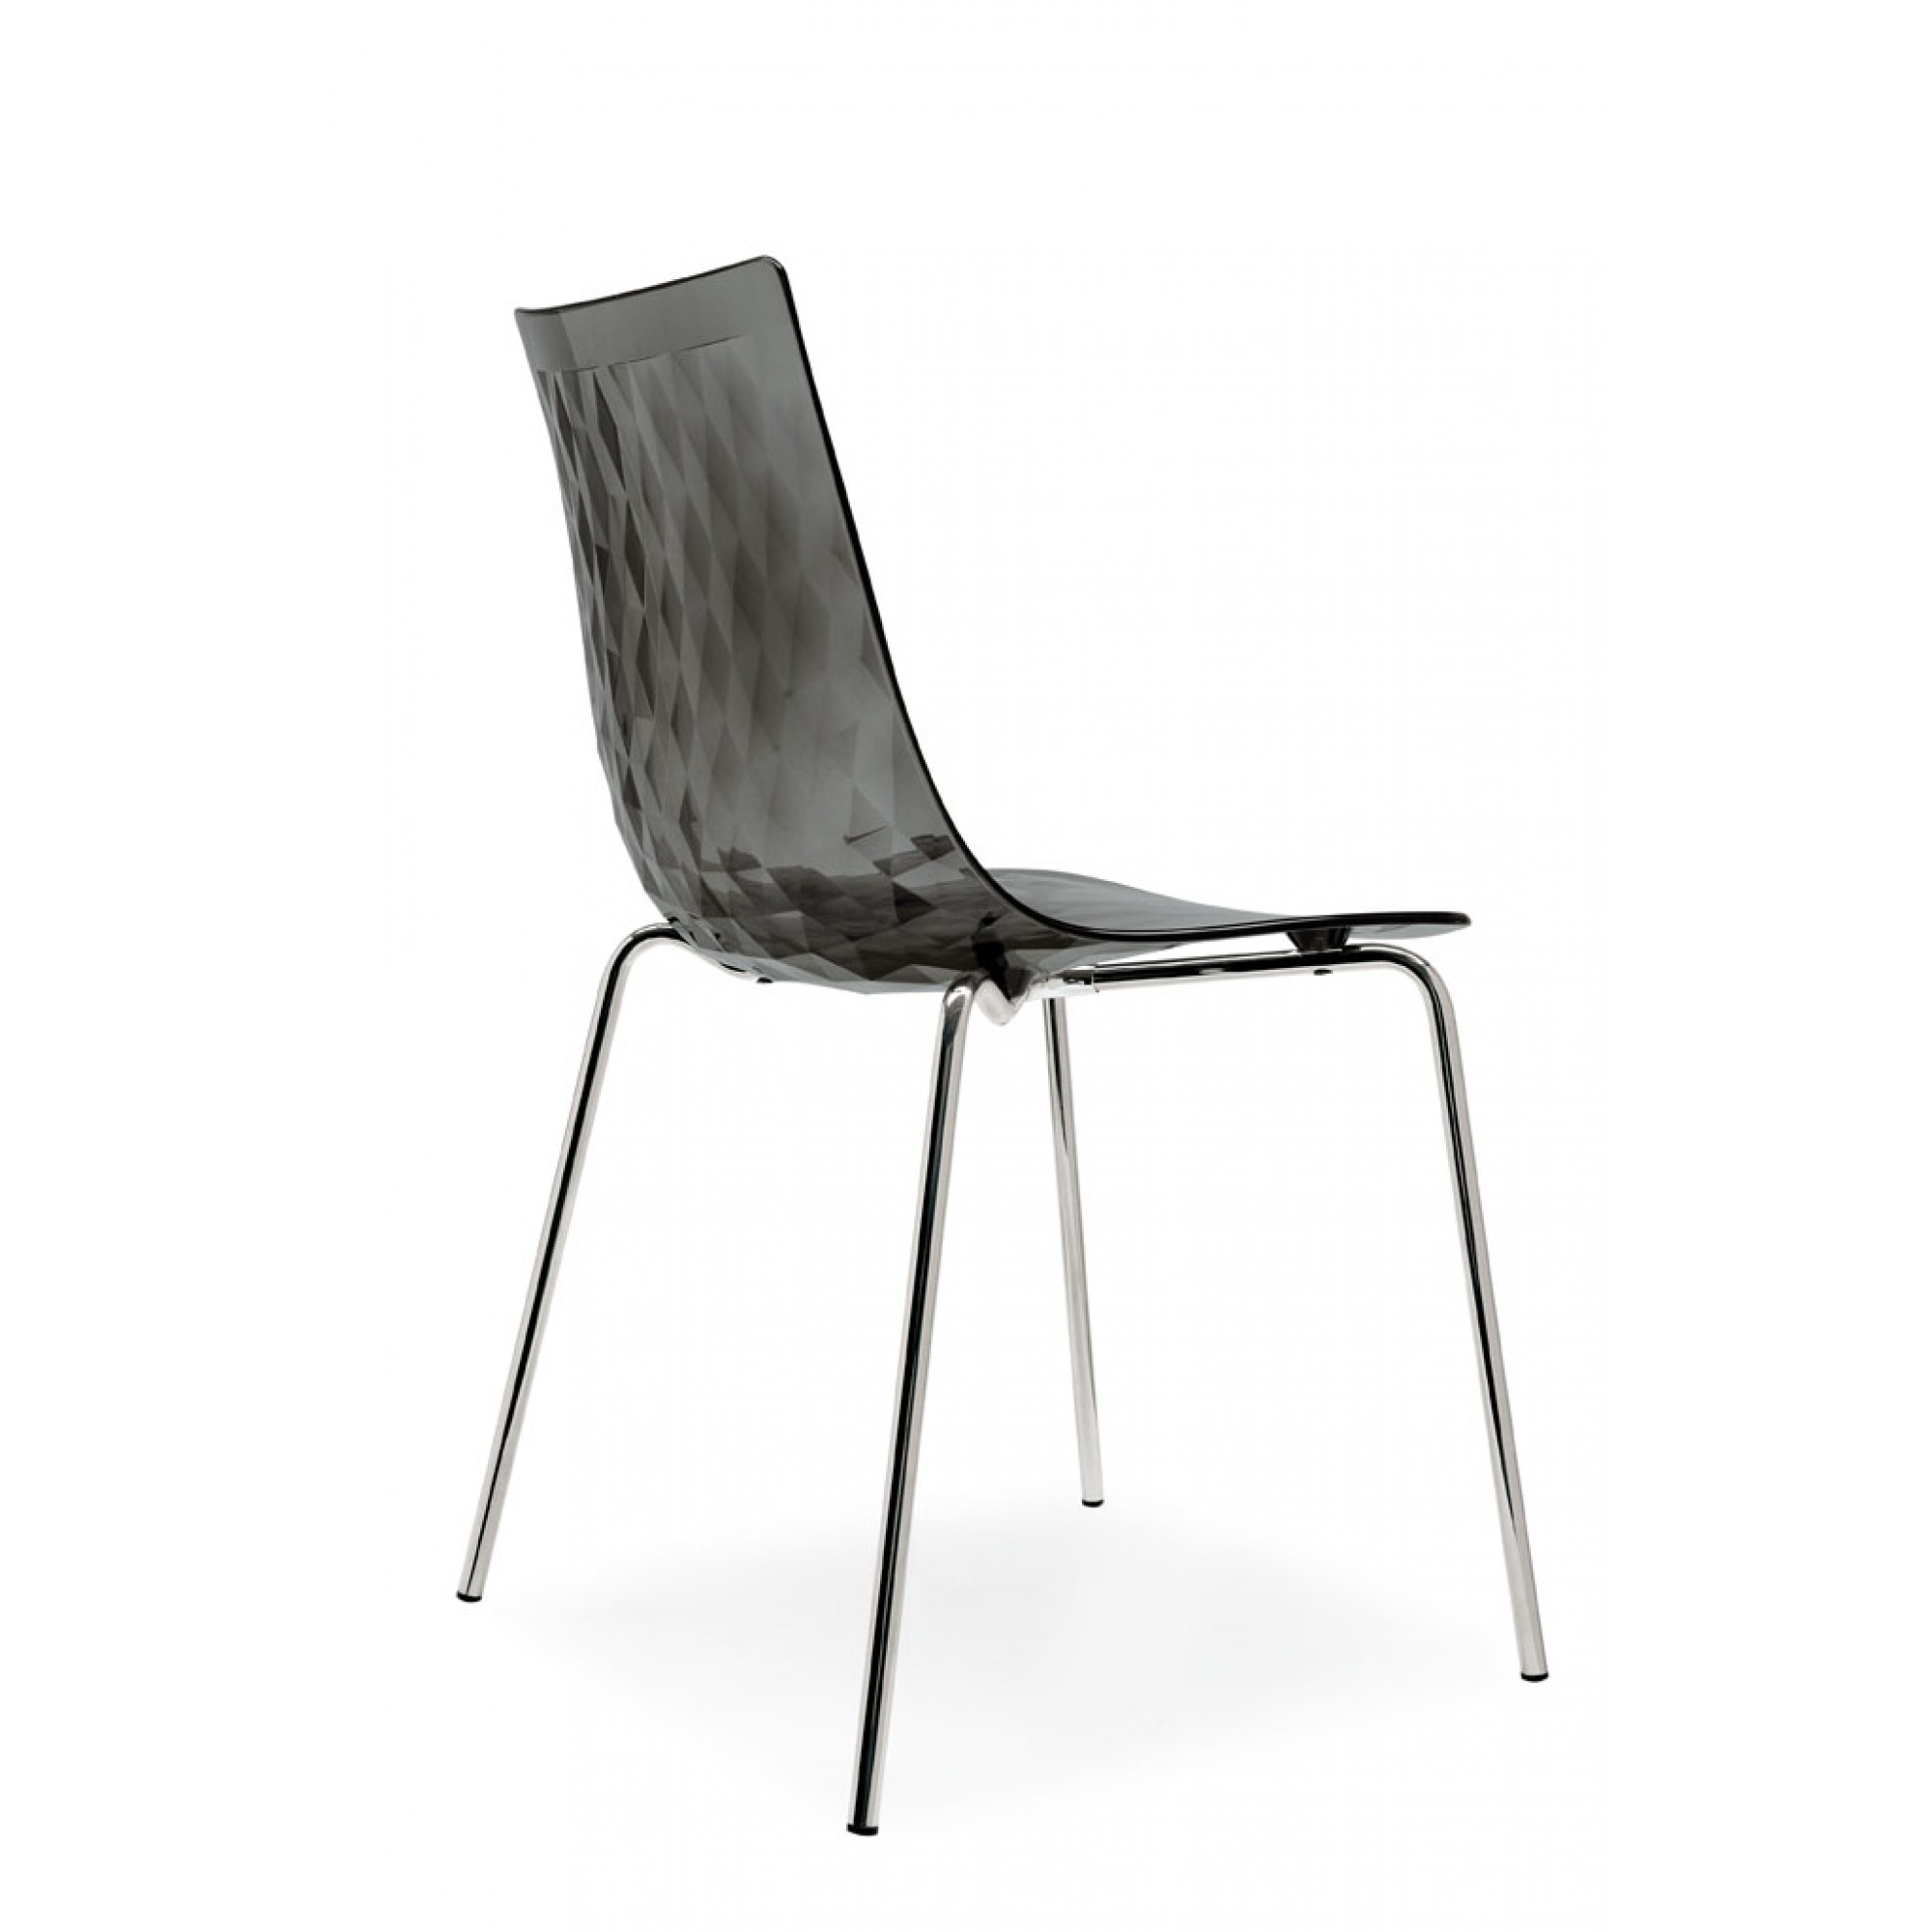 ICE ICE BY CALLIGARIS CALLIGARIS CHAIRChairsSeatsCONNUBIA BY CHAIRChairsSeatsCONNUBIA ICE jGLMpzqSUV